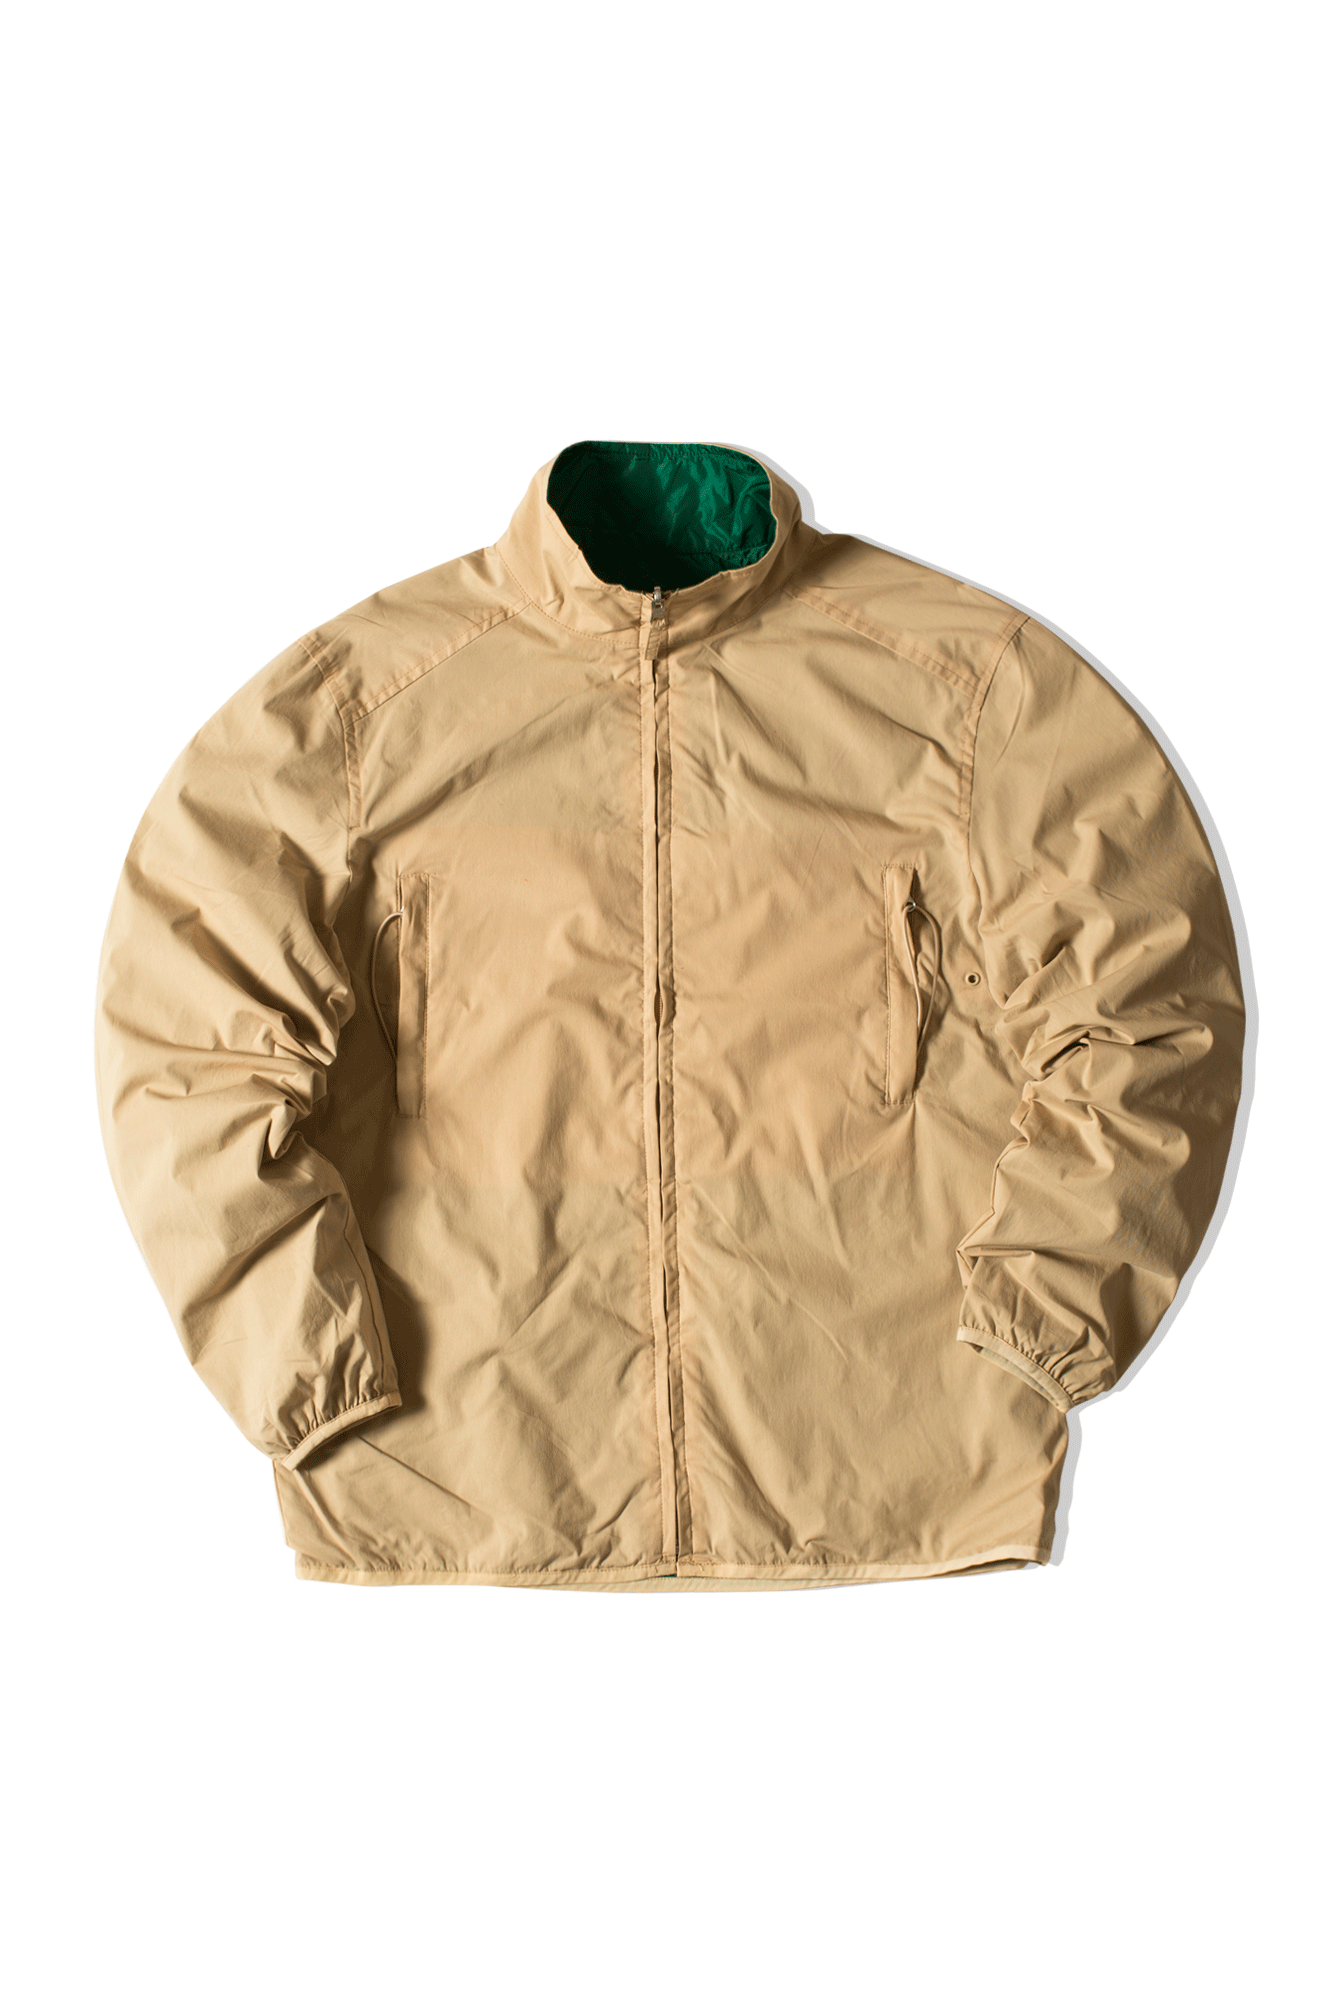 Pop Trading Company Giacche Plada Jacket Marrone SS2005-005#000#KHGRN#M - One Block Down